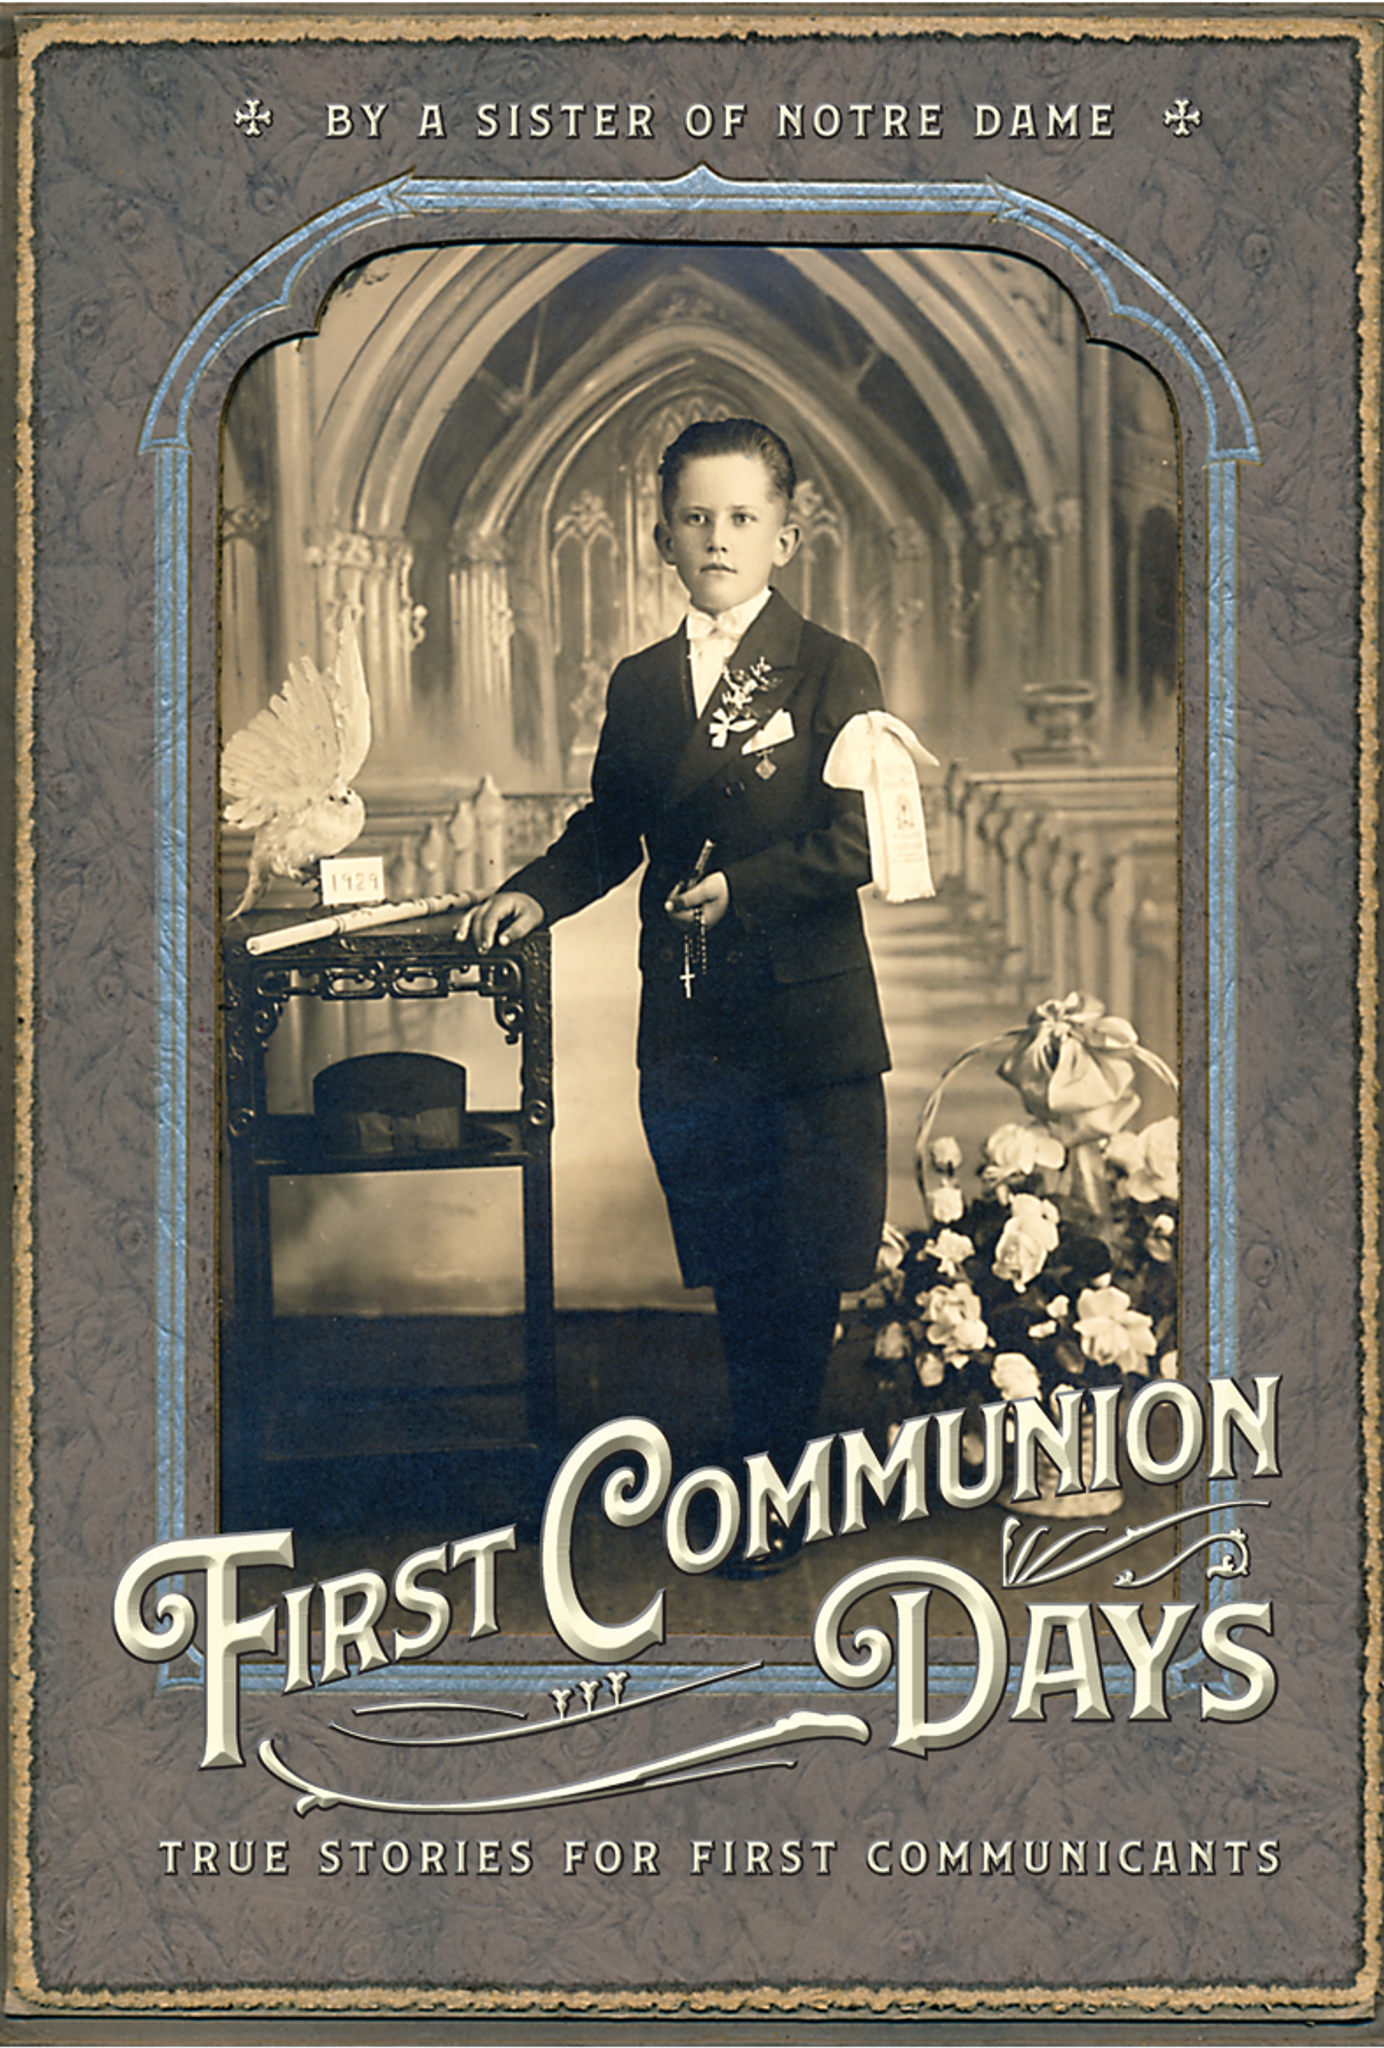 HOLY COMMUNION: THE BODY AND BLOOD OF THE LORD JESUS